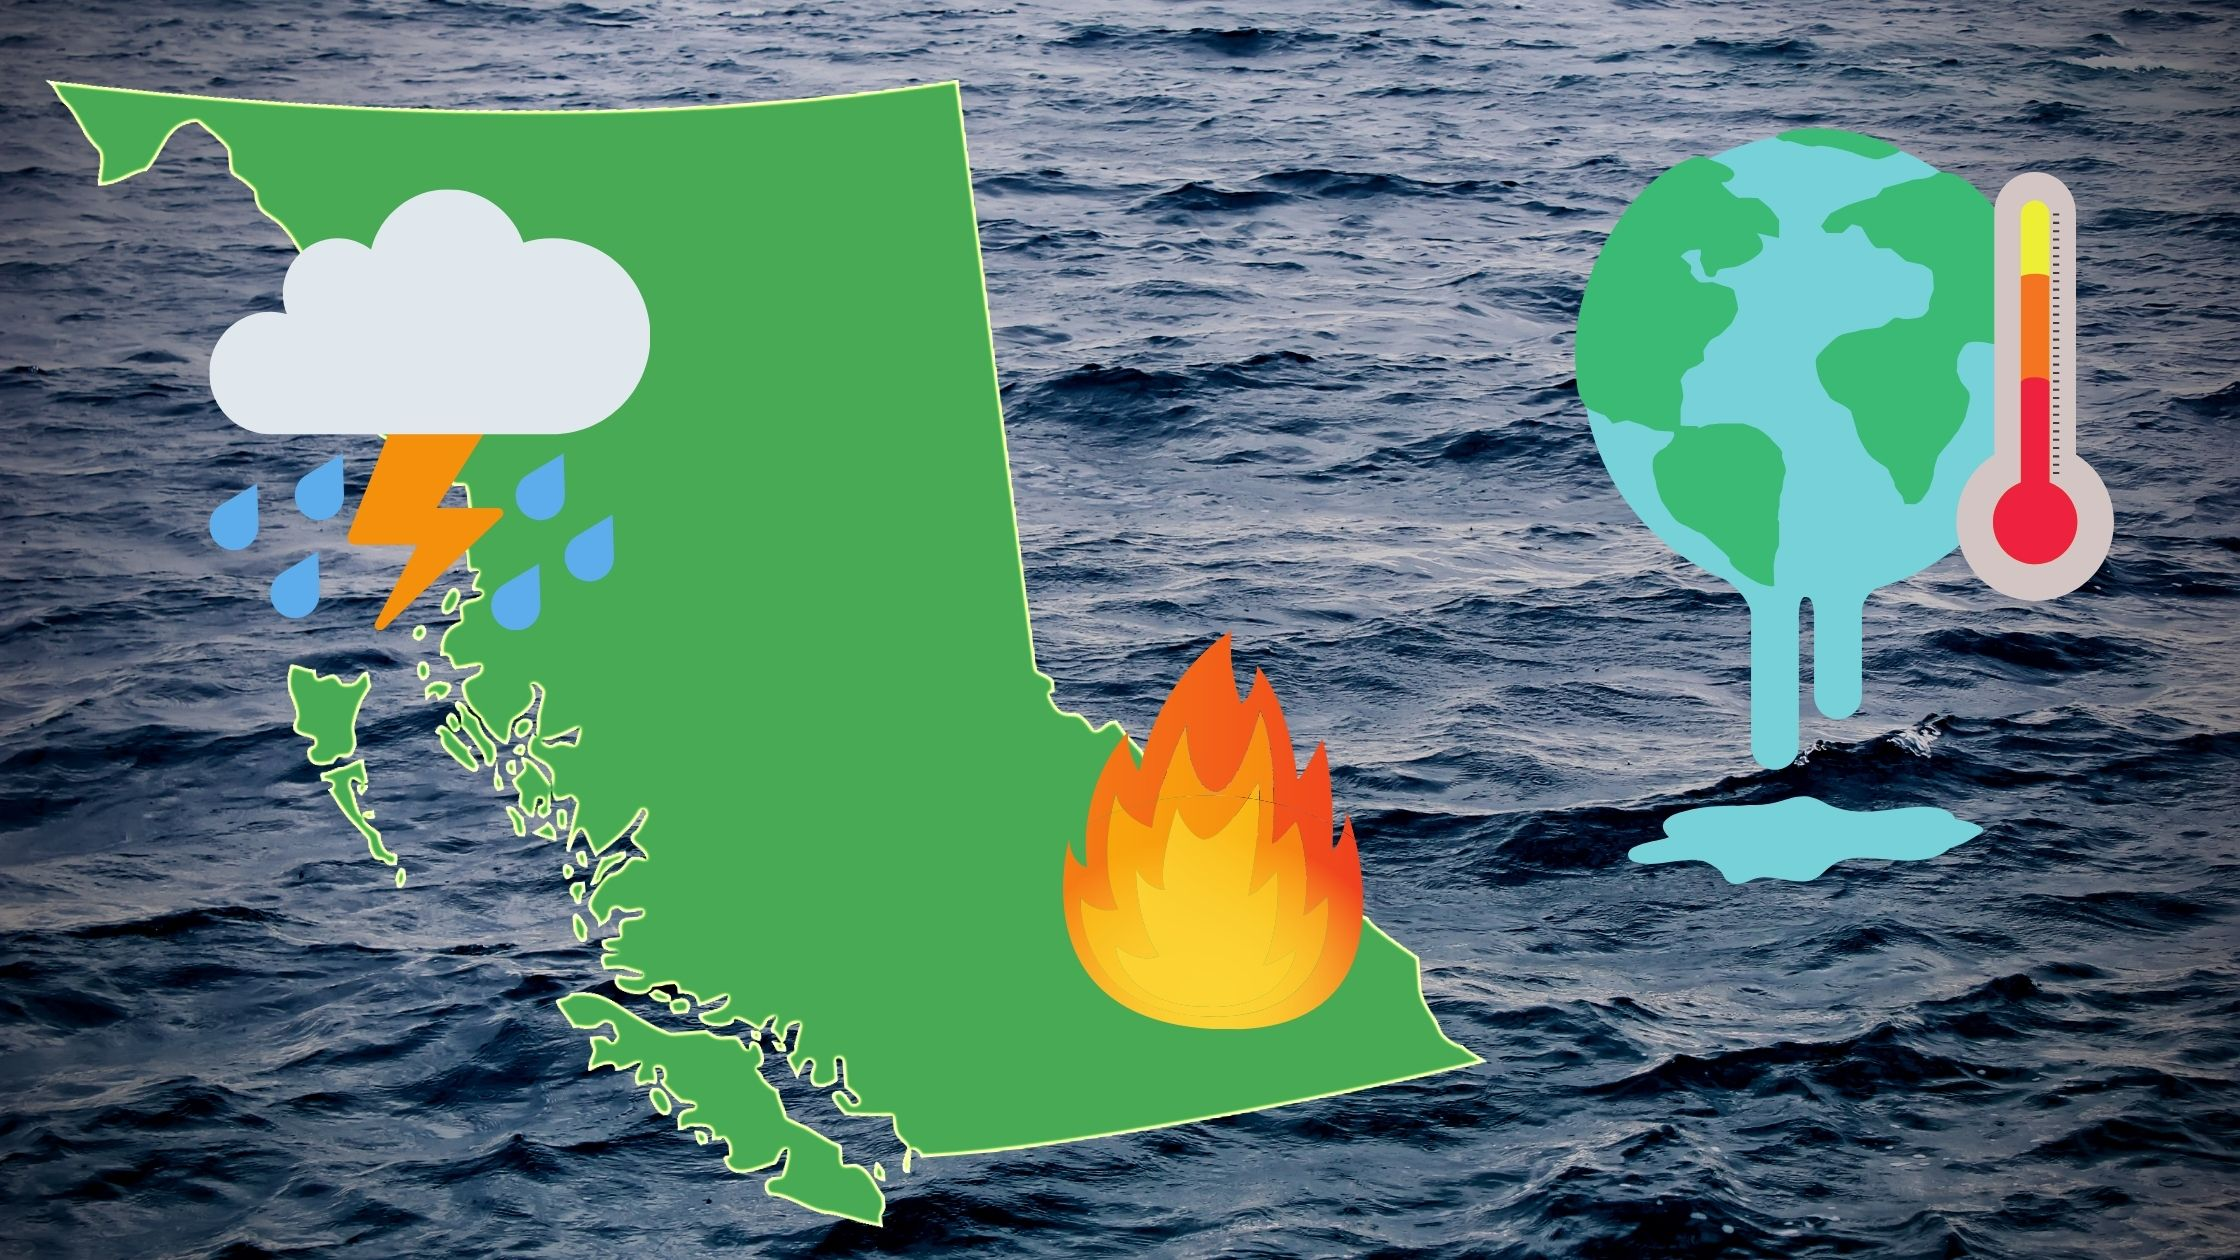 BC map with rain cloud and fire icons